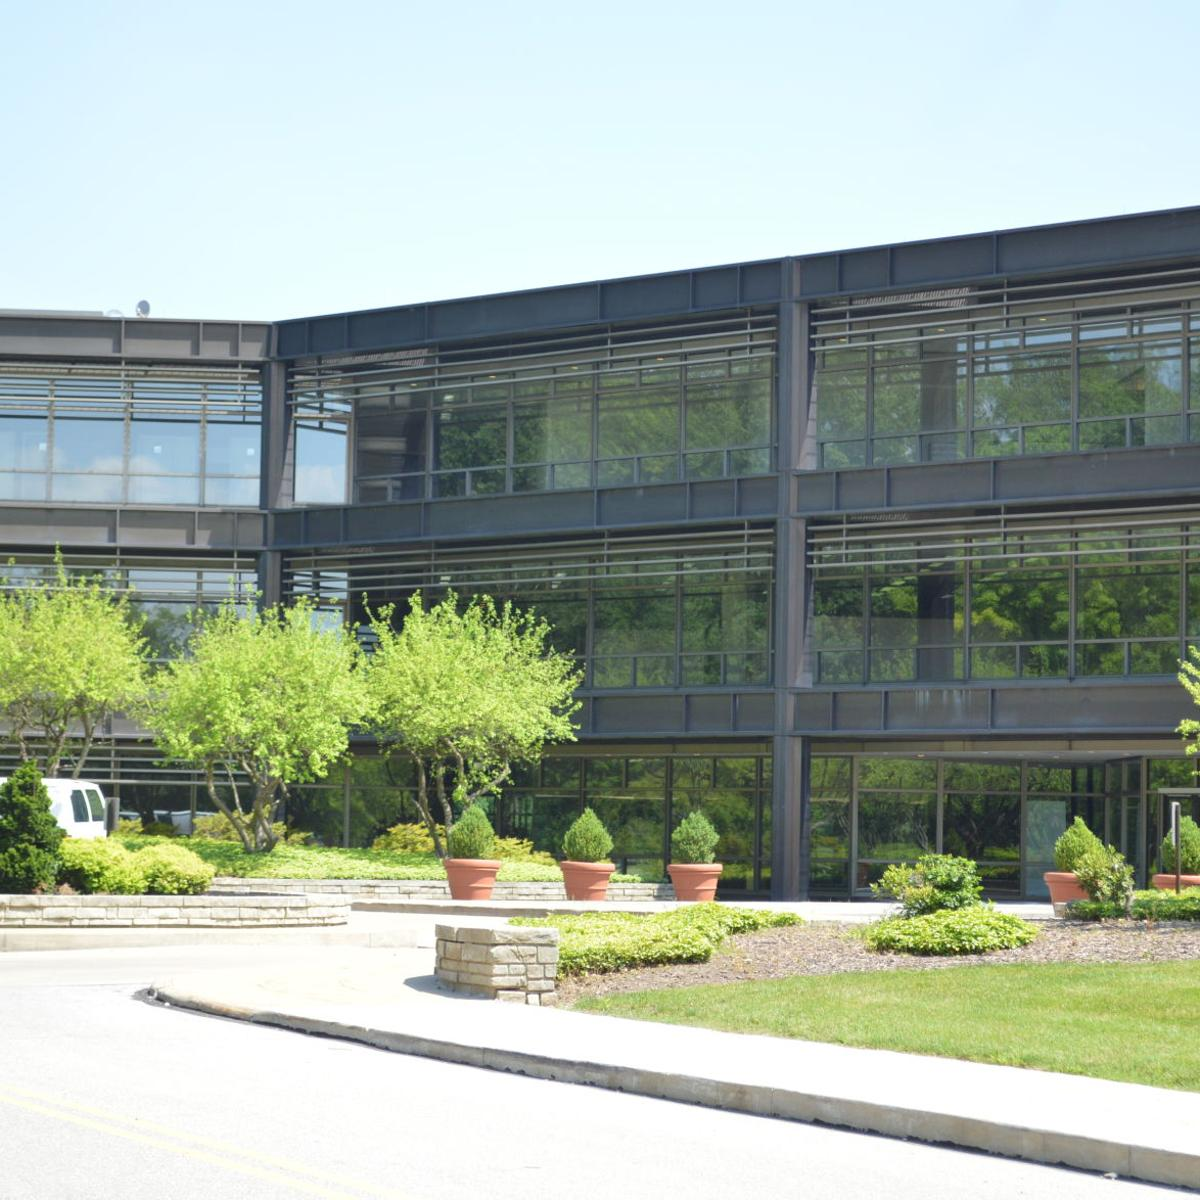 Cleveland Clinic to sell former TRW campus | Local News